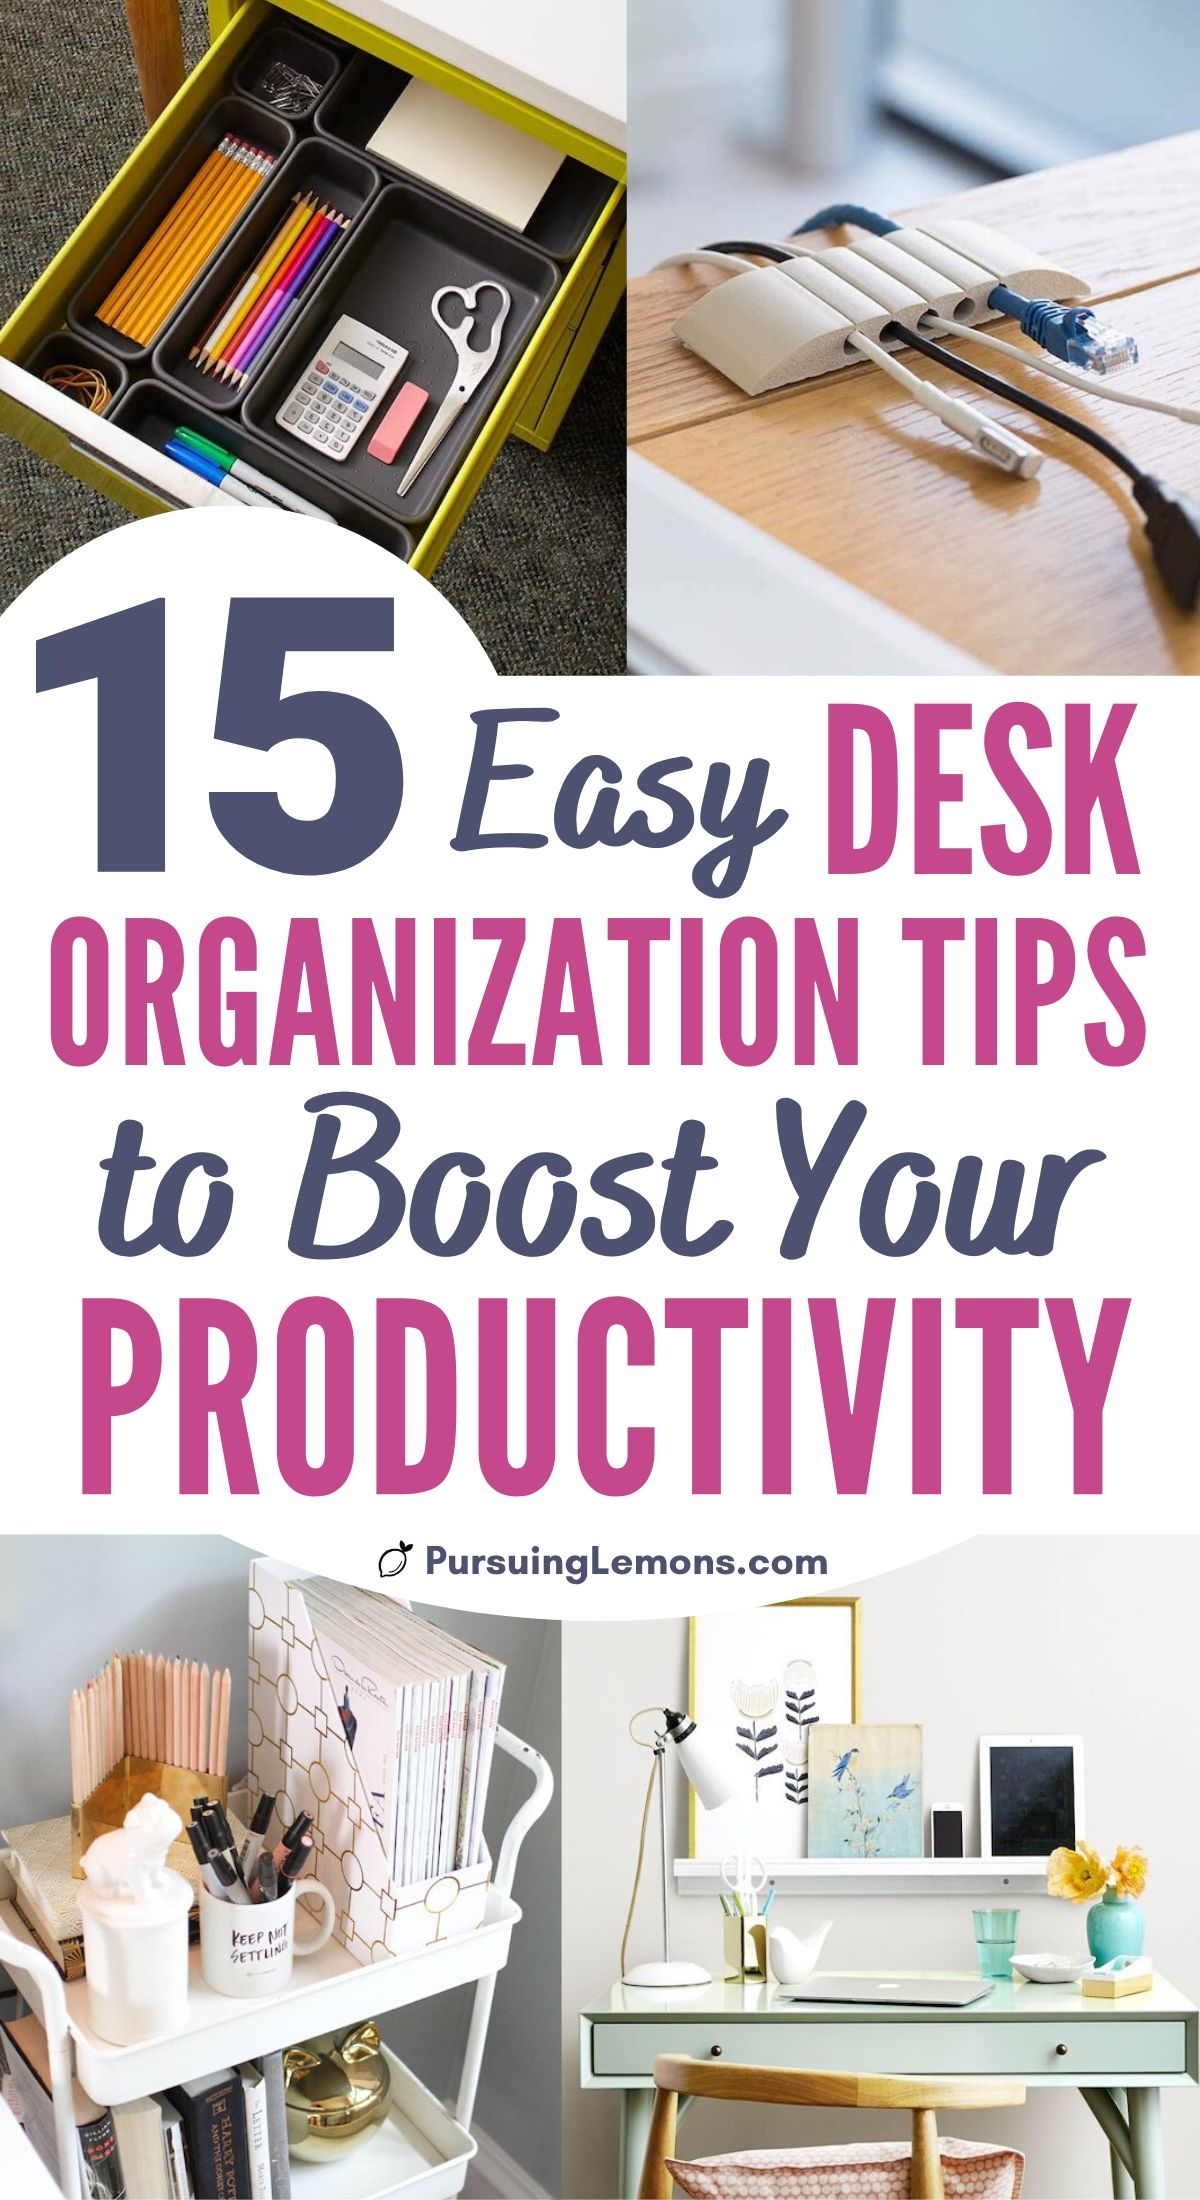 In need of some storage ideas for your office space? Organize desk with these desk organization hacks. Become more productive with a neat workspace and get rid of paper clutter. #organizingdesk #deskorganization #organization